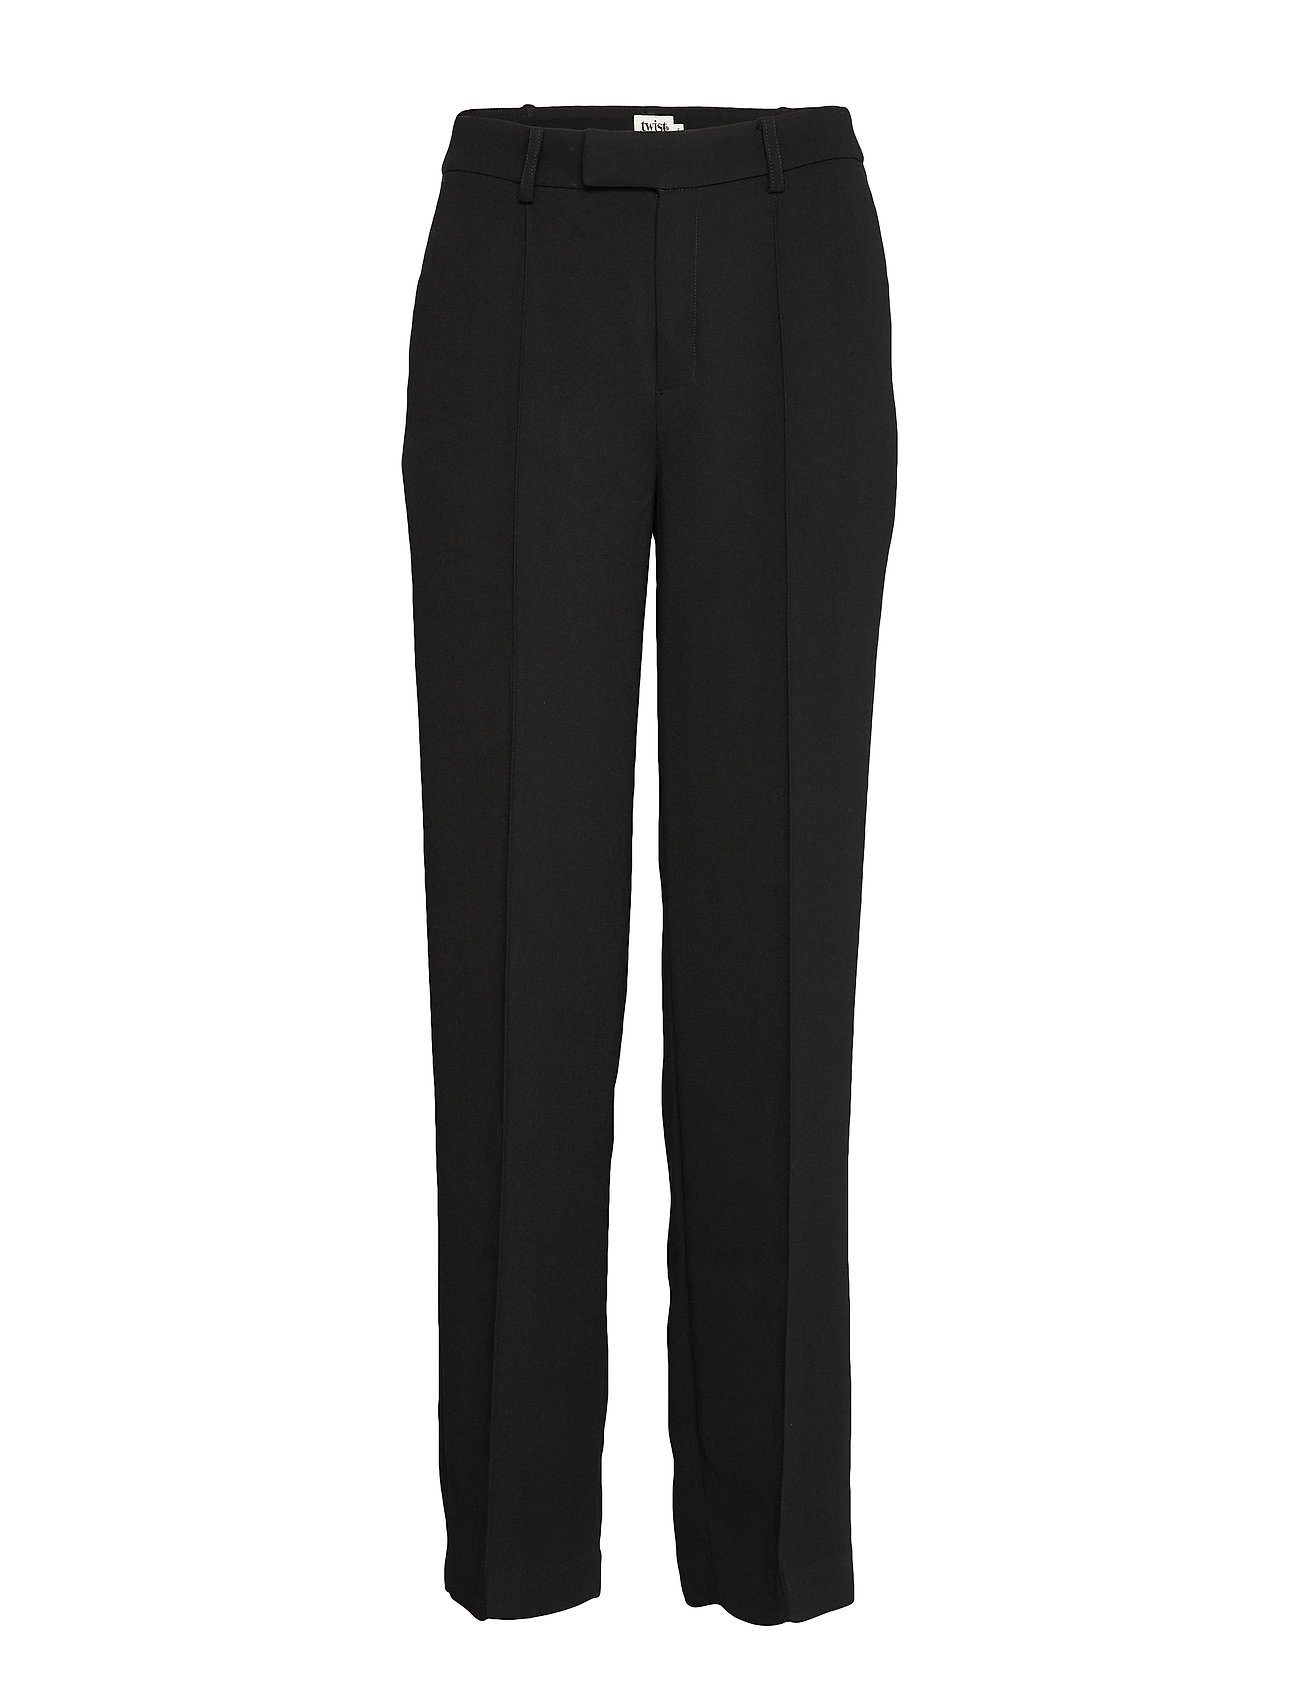 Twist & Tango Lucy Trousers - BLACK